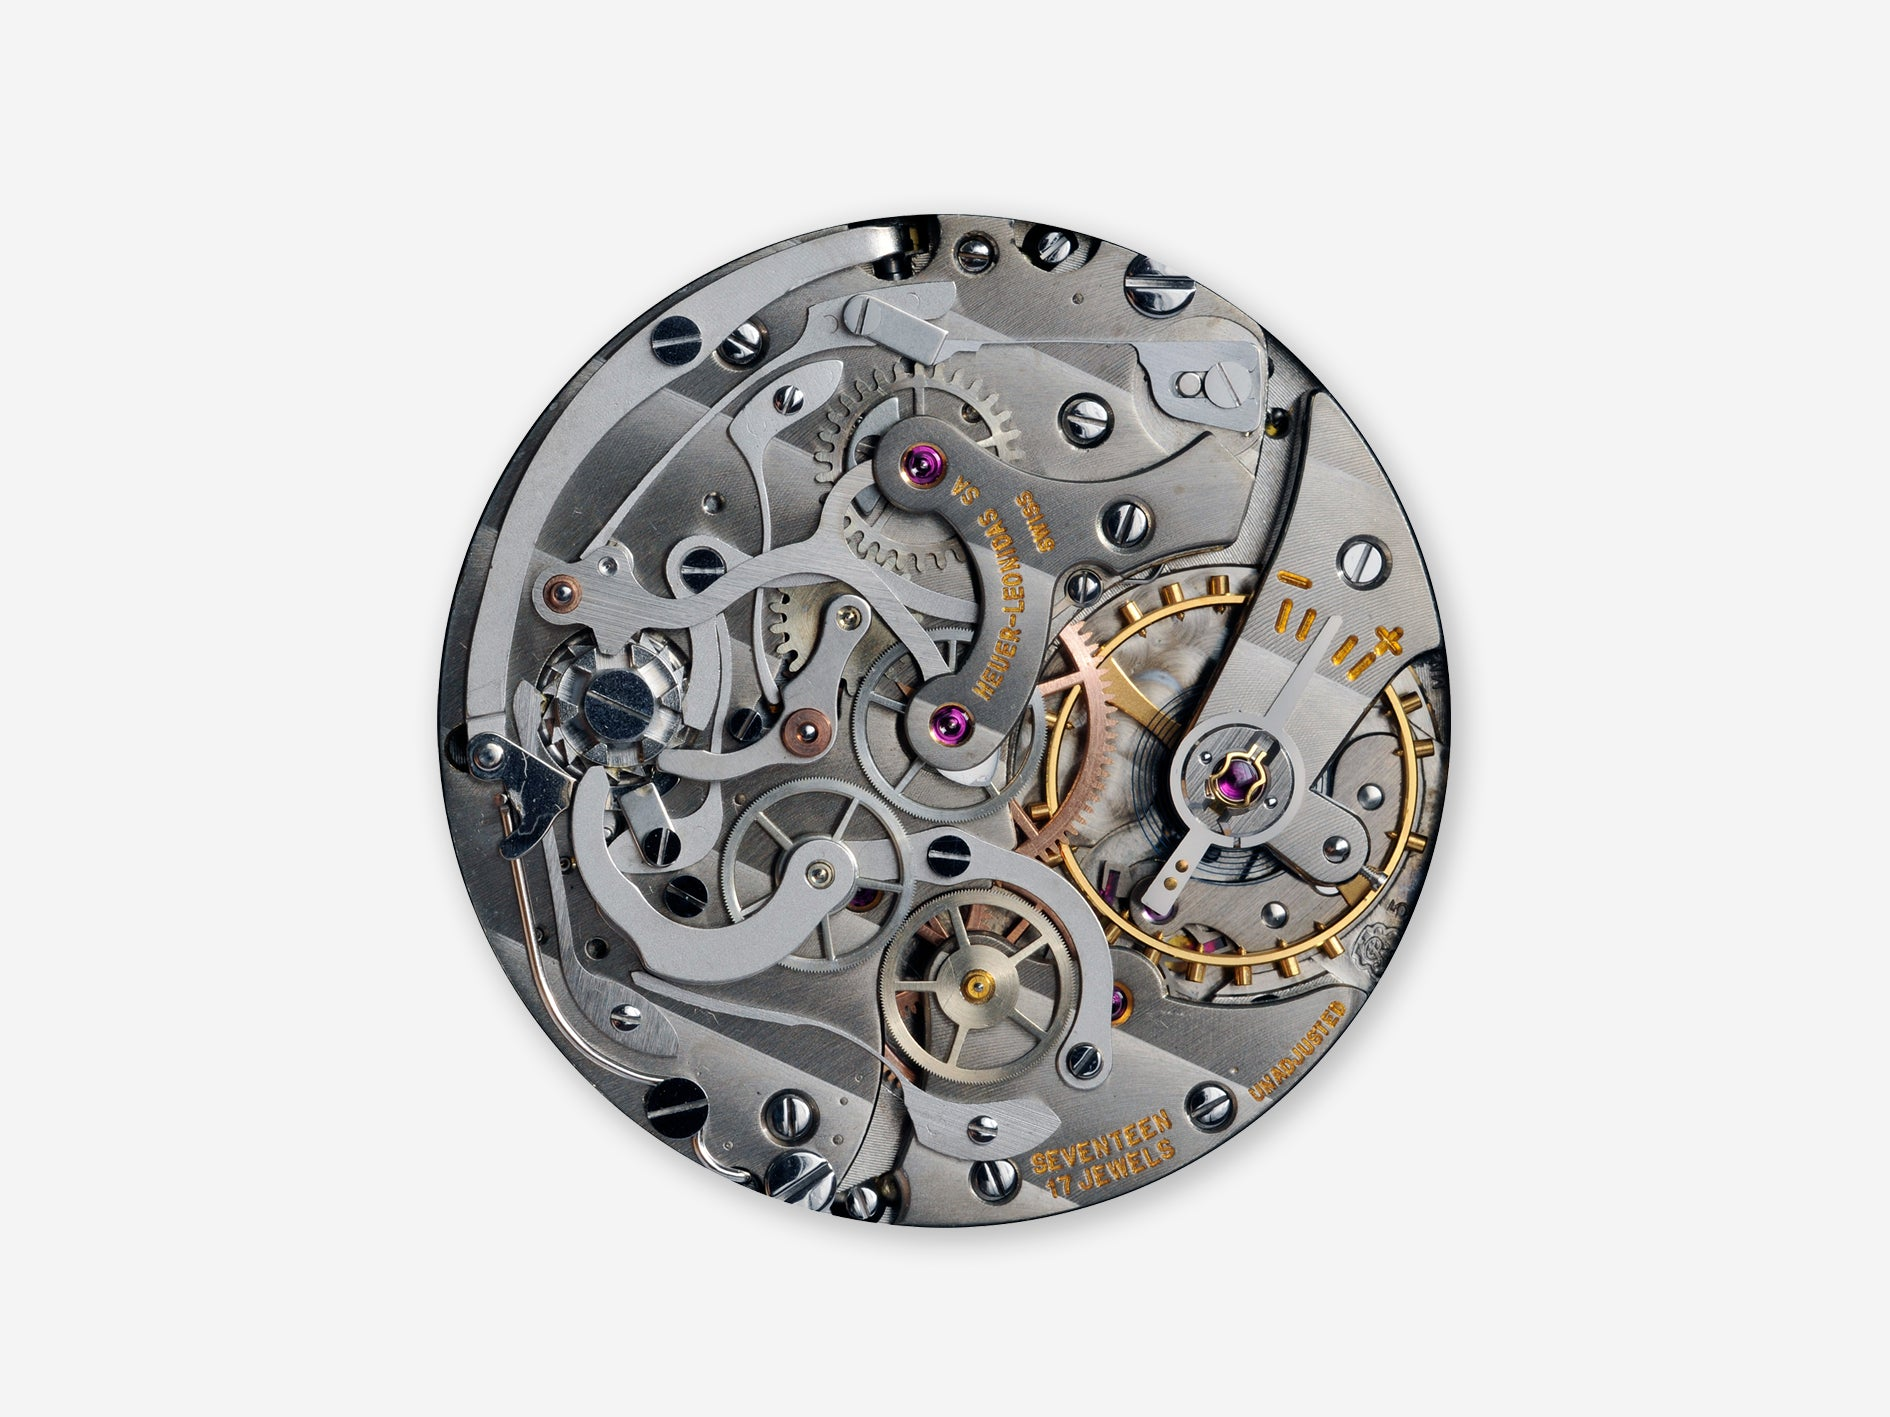 Valjoux calibre 5 chronograph movement